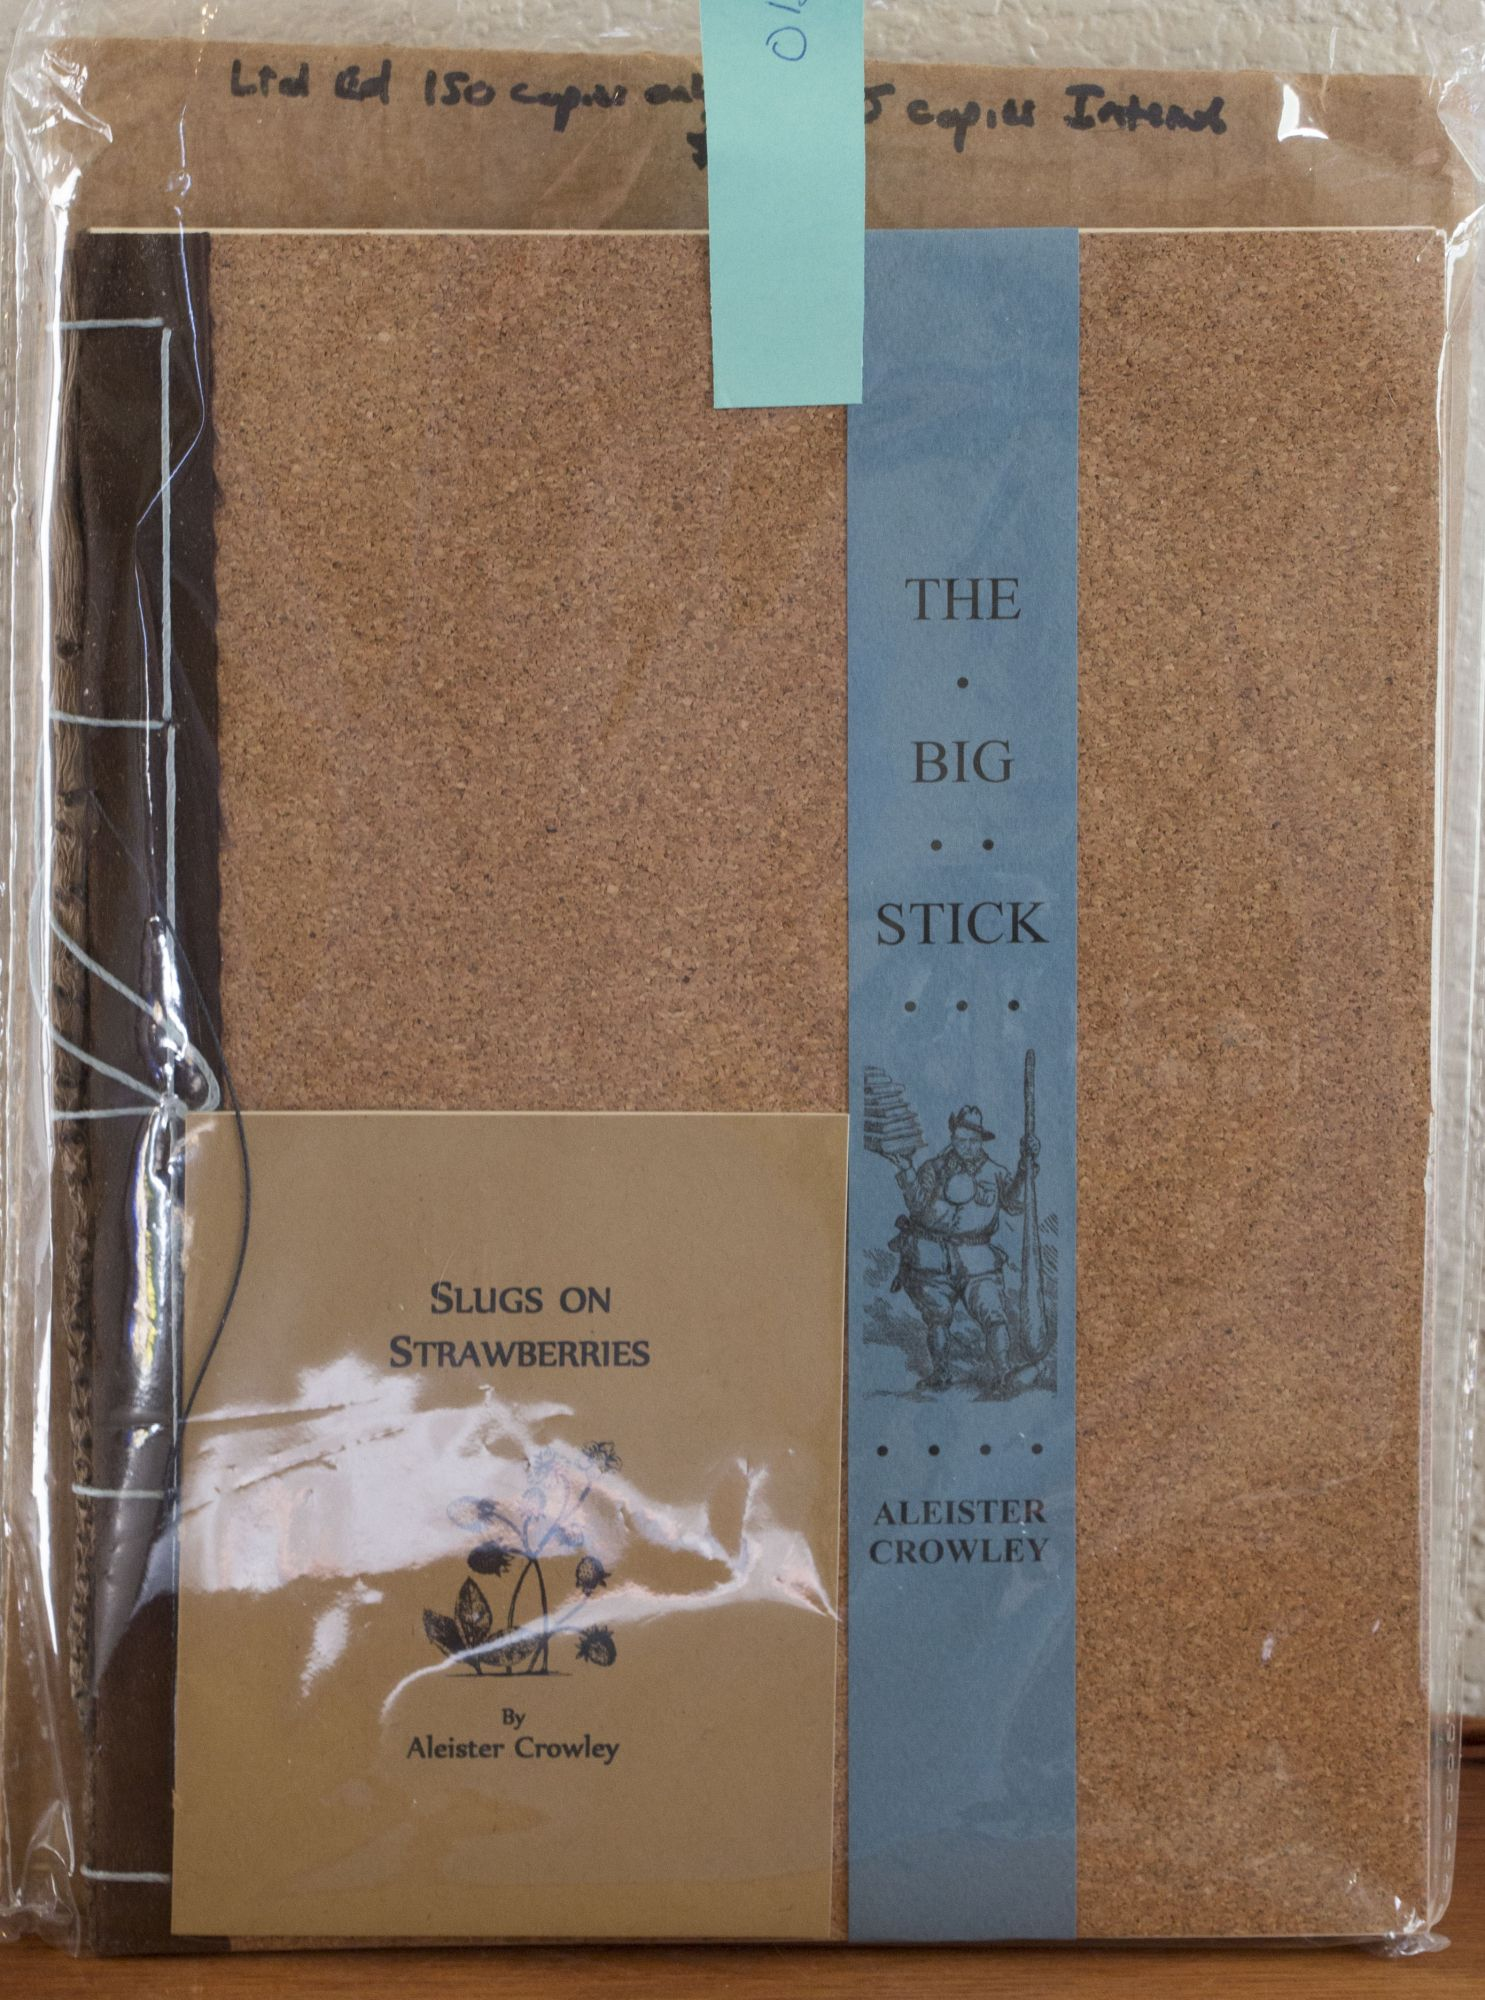 The BIG STICK Plus SLUGS on STRAWBERRIES (Limited Hand-Bound Edition of Only 150 Copies)